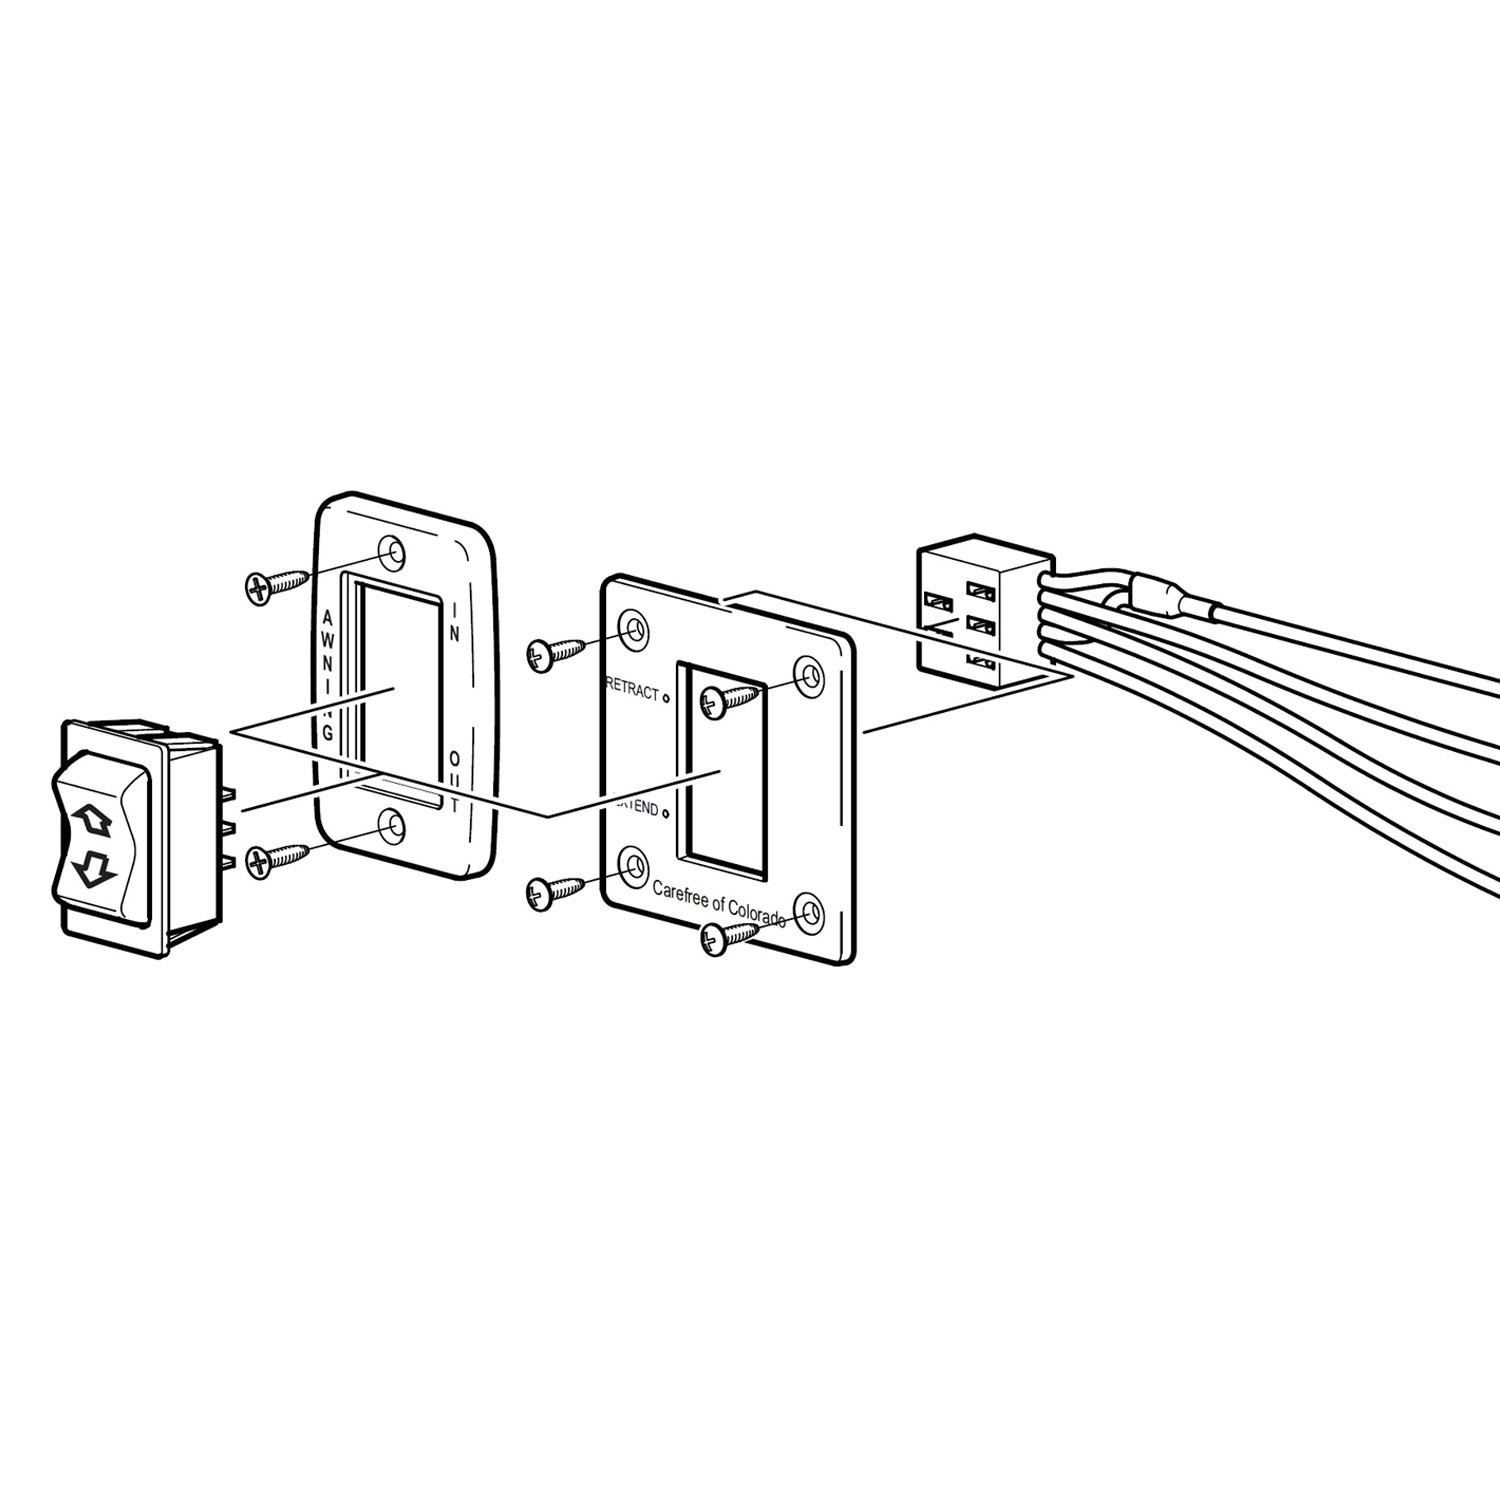 Carefree Awning Parts Diagram Carefree R Awning Switch Of Carefree Awning Parts Diagram